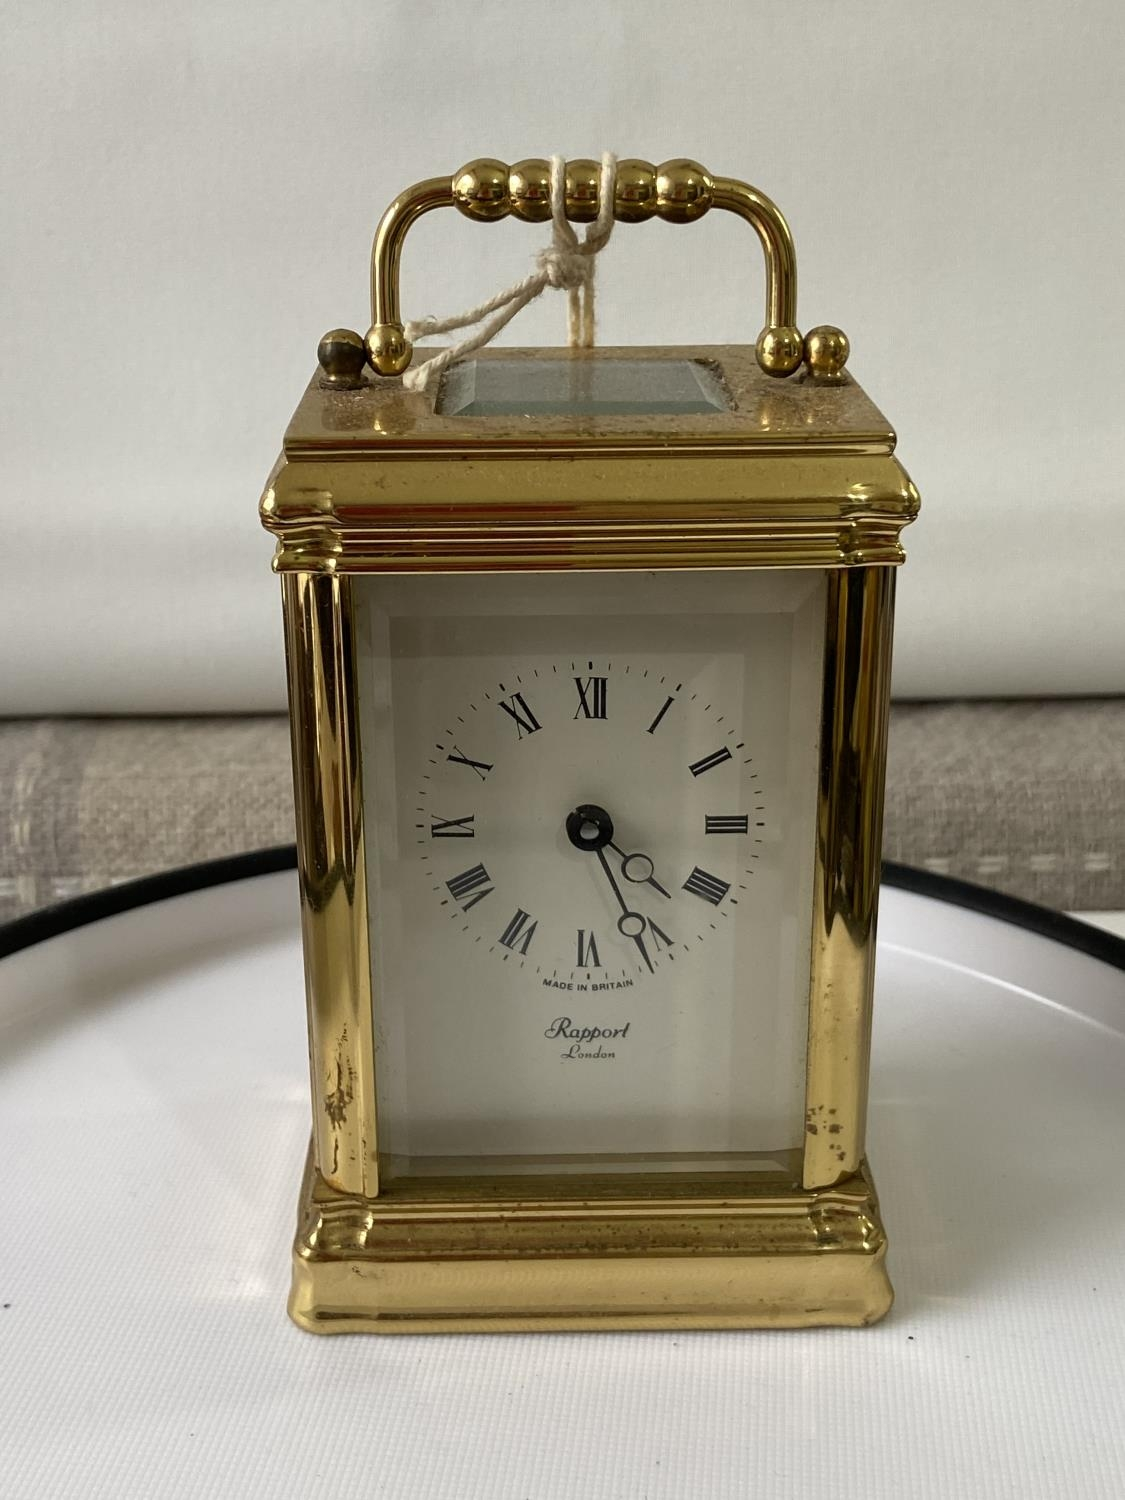 Antique heavy brass carriage clock [Rapport London] [MVT No 1800] in a working condition and with